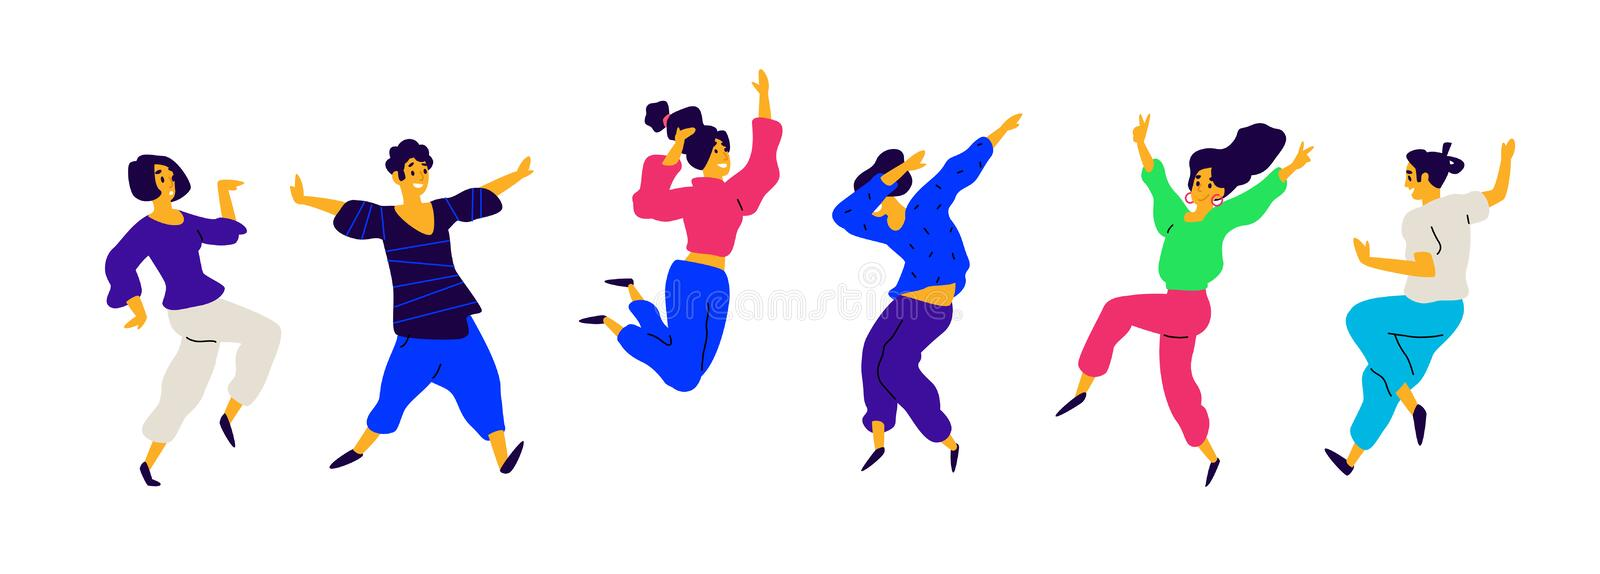 Dancing and fun people, positive emotions. Vector. Illustrations of males and females. Flat style. A group of happy and joyful. Teenagers. Shapes are isolated royalty free illustration